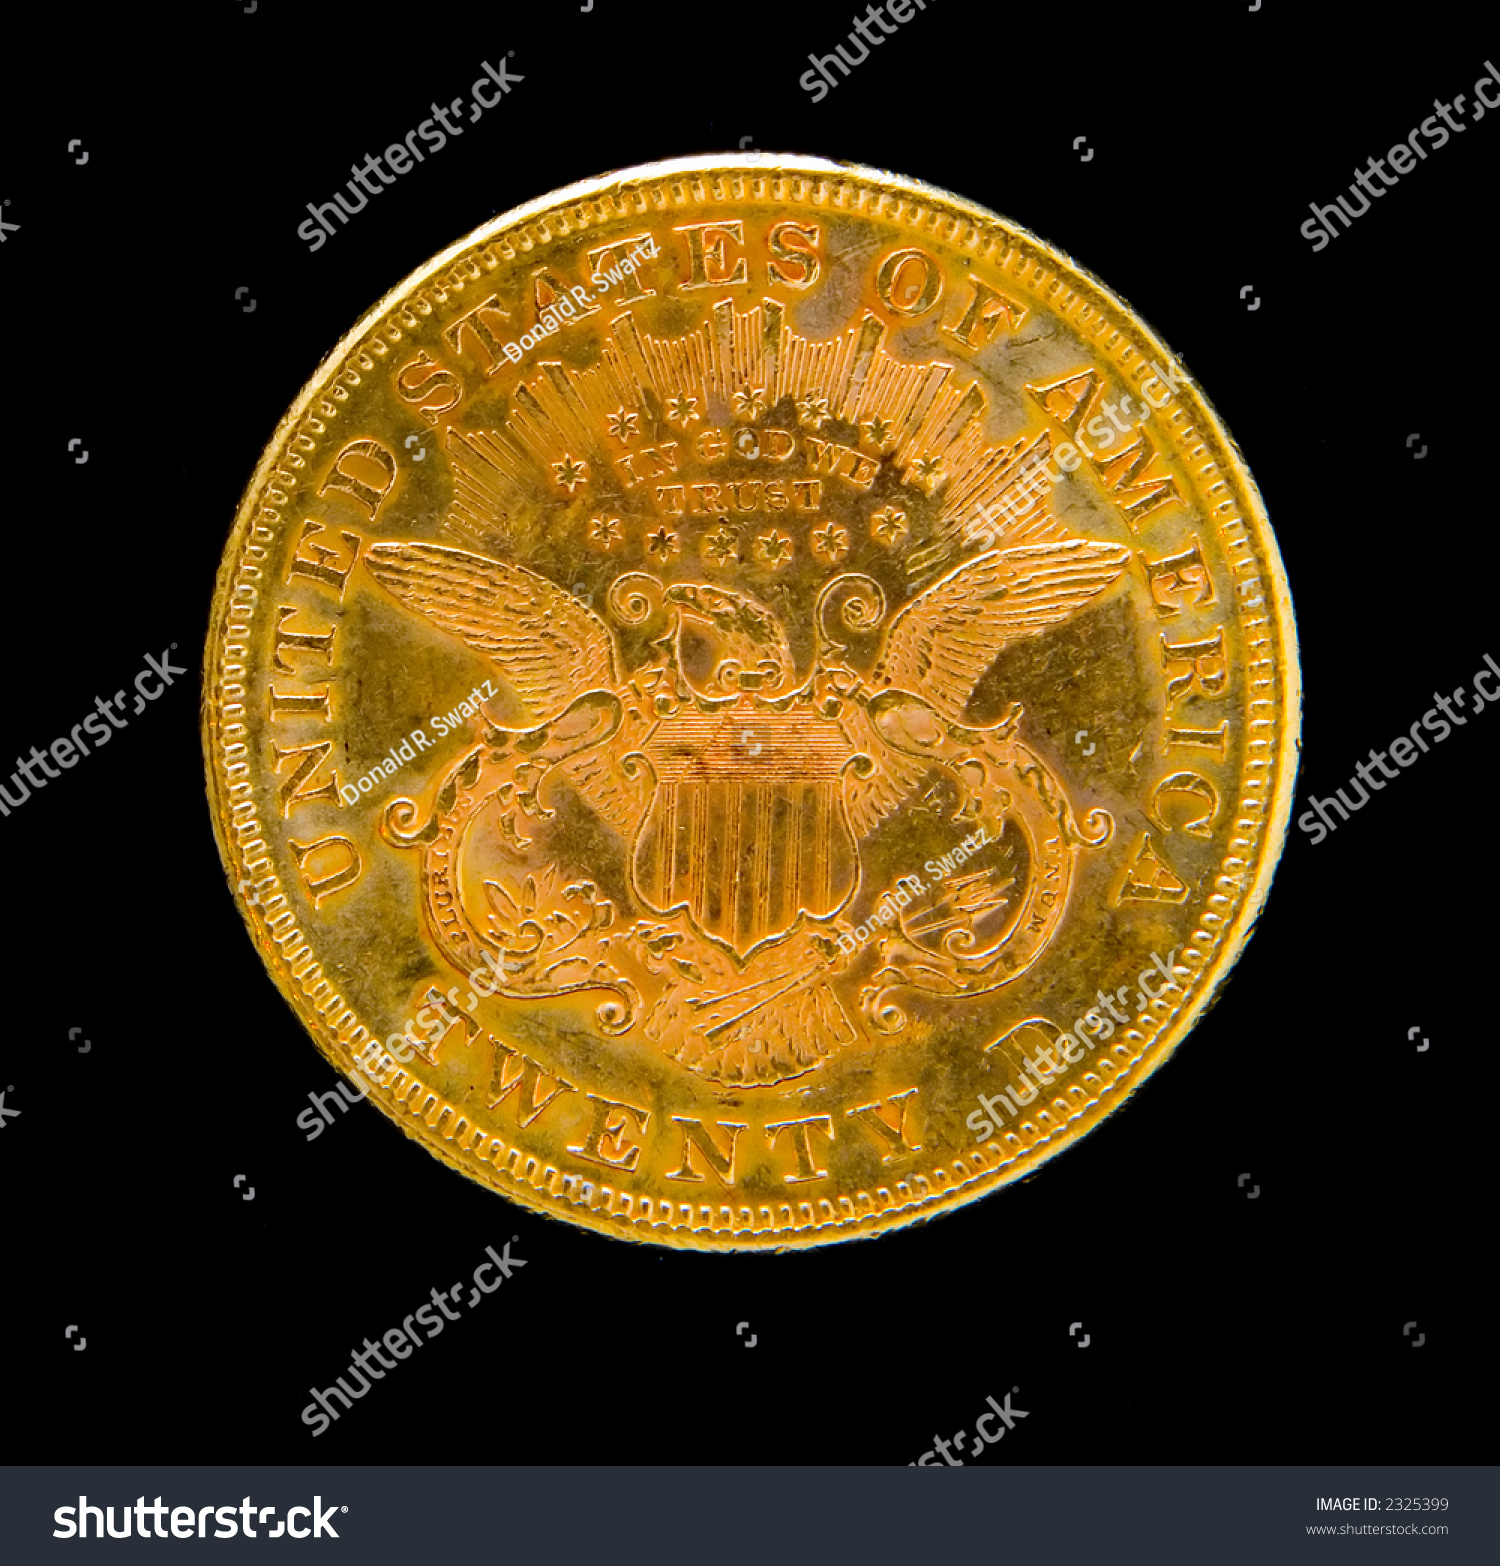 gold coins black background - photo #48